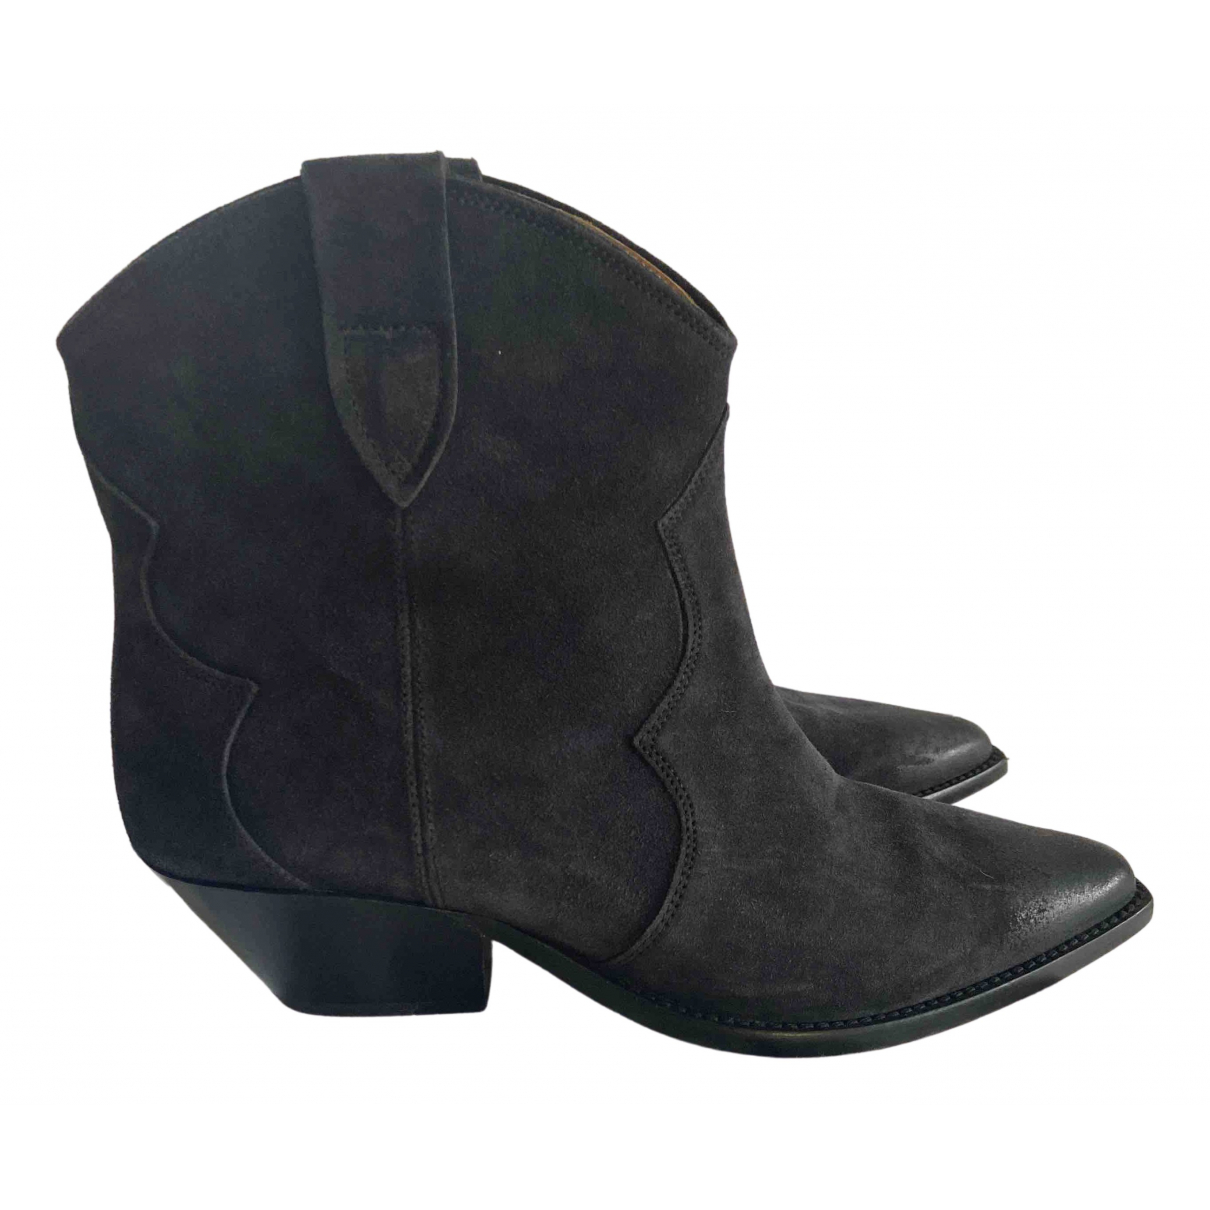 Isabel Marant \N Black Suede Boots for Women 39 EU